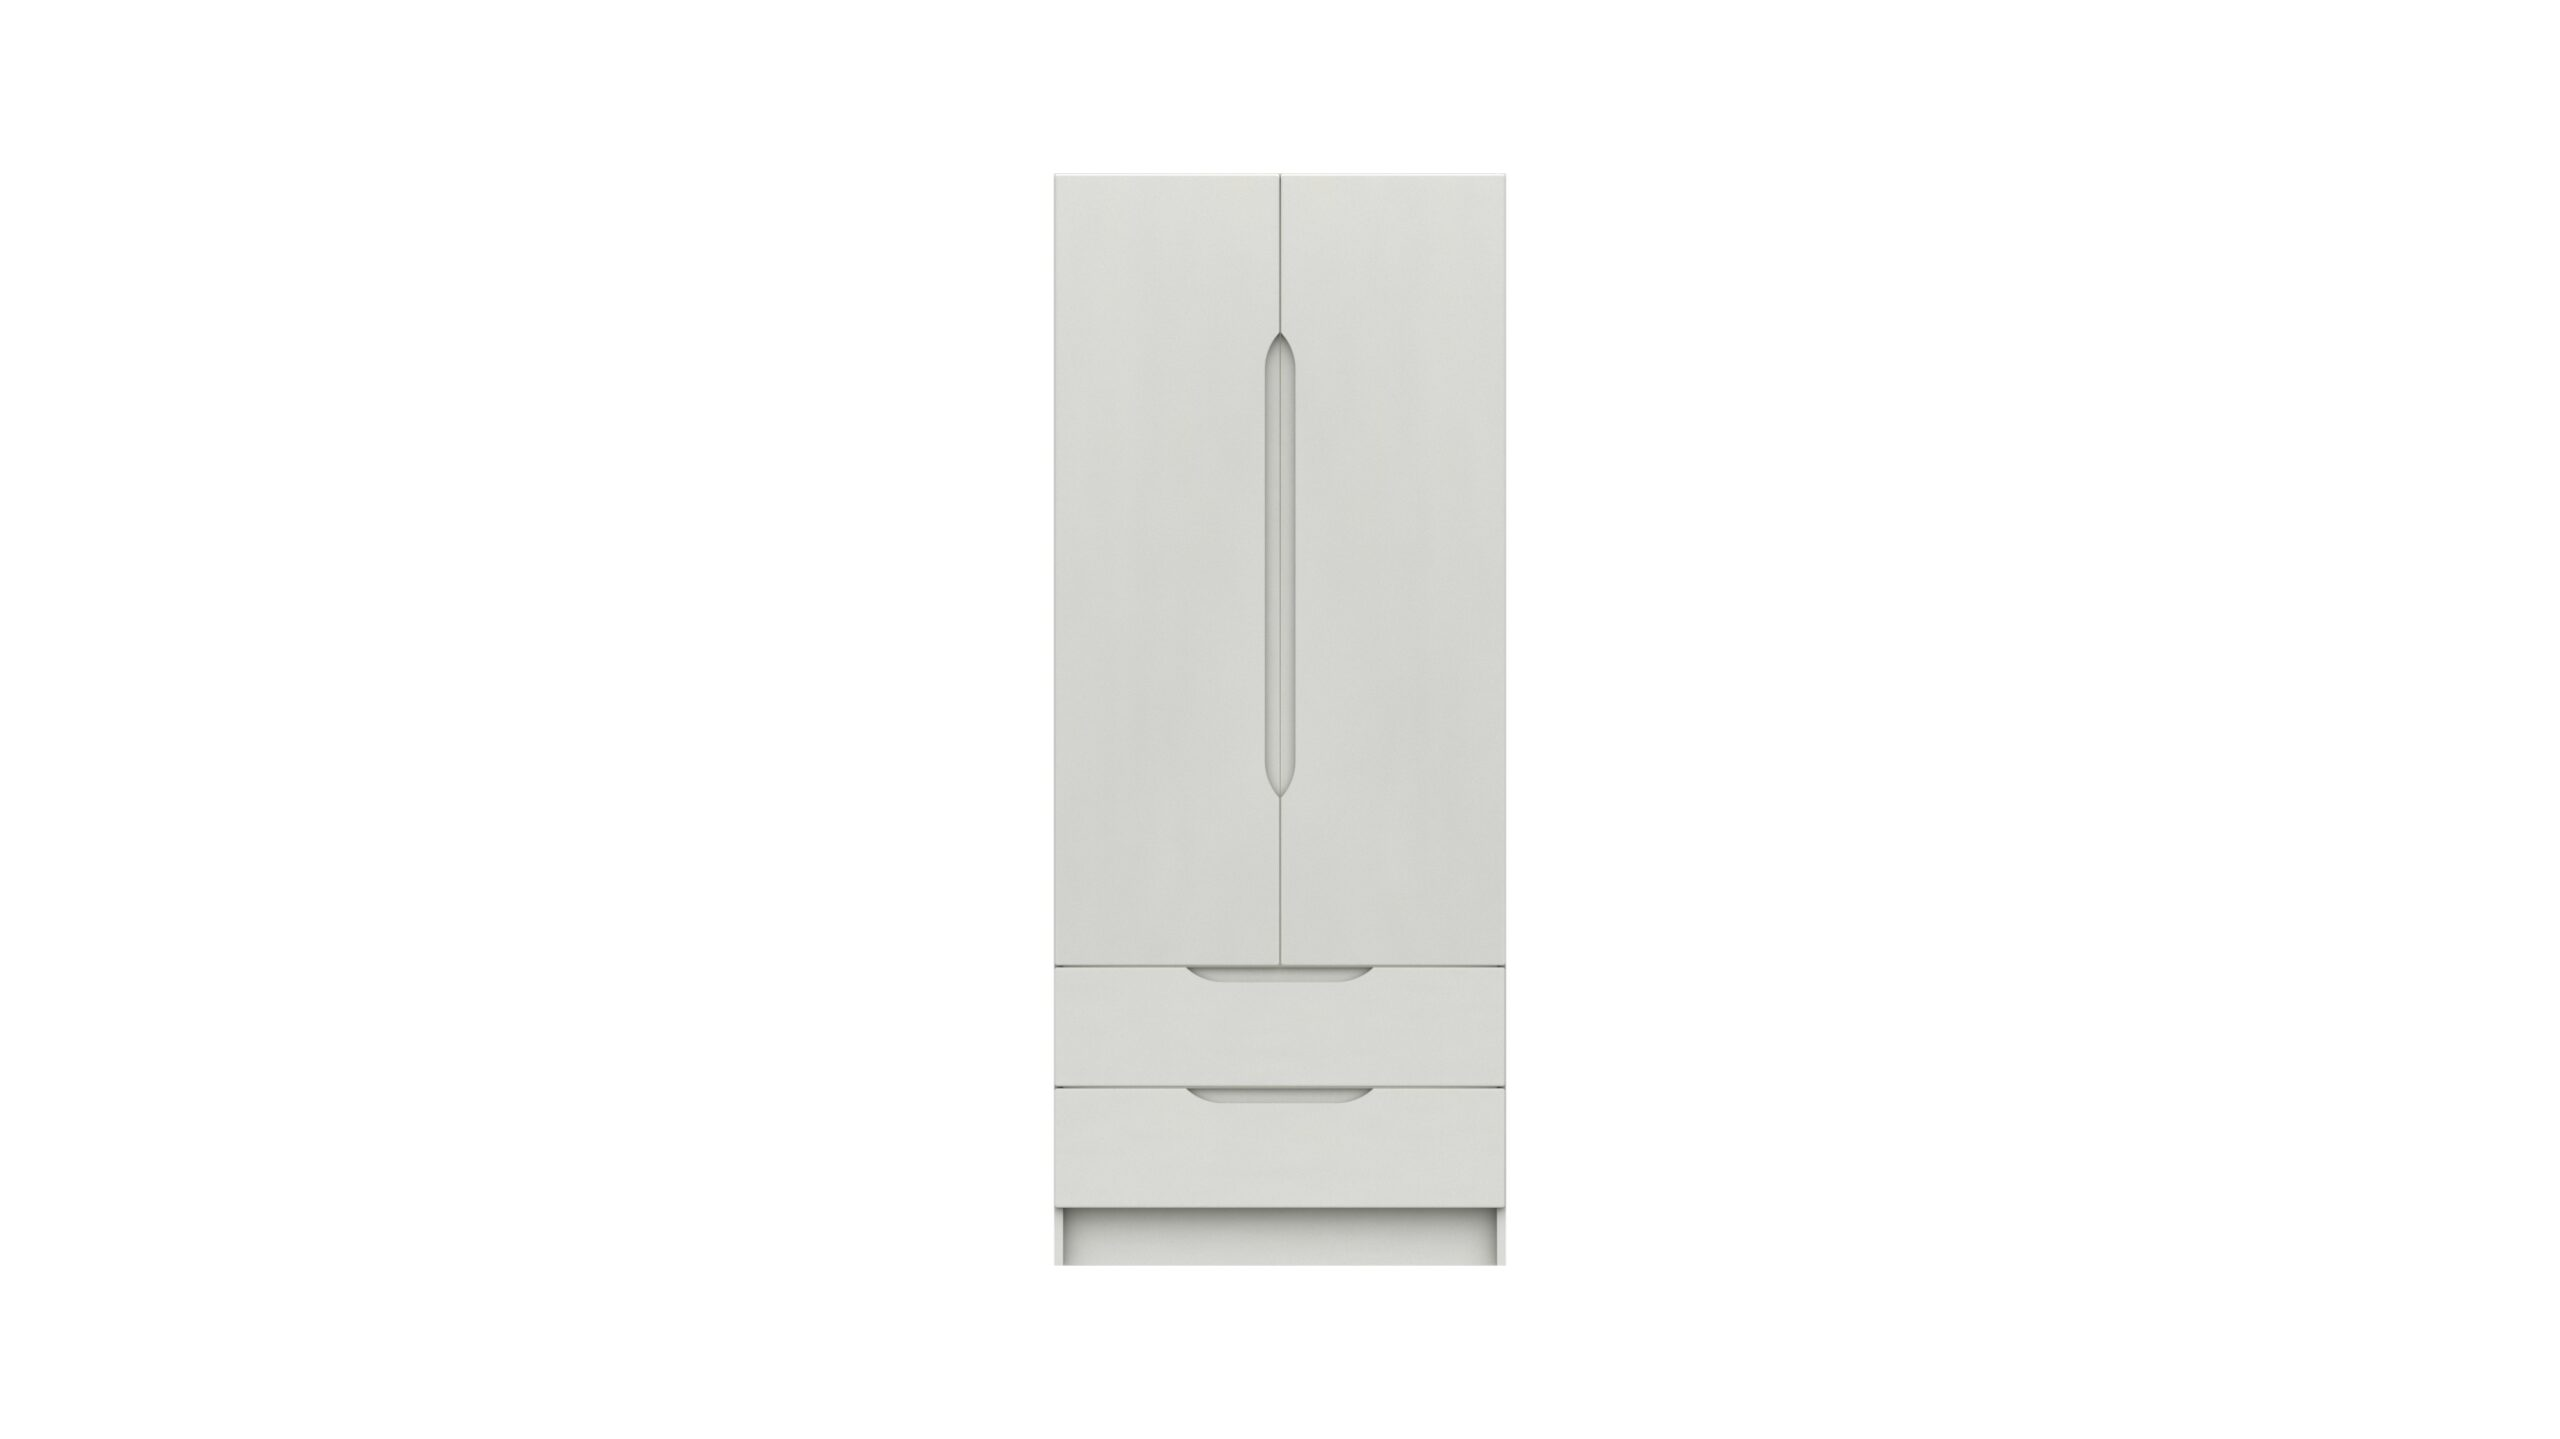 Sinata Two Door Two Drawer Gloss Finish Wardrobe - White Gloss